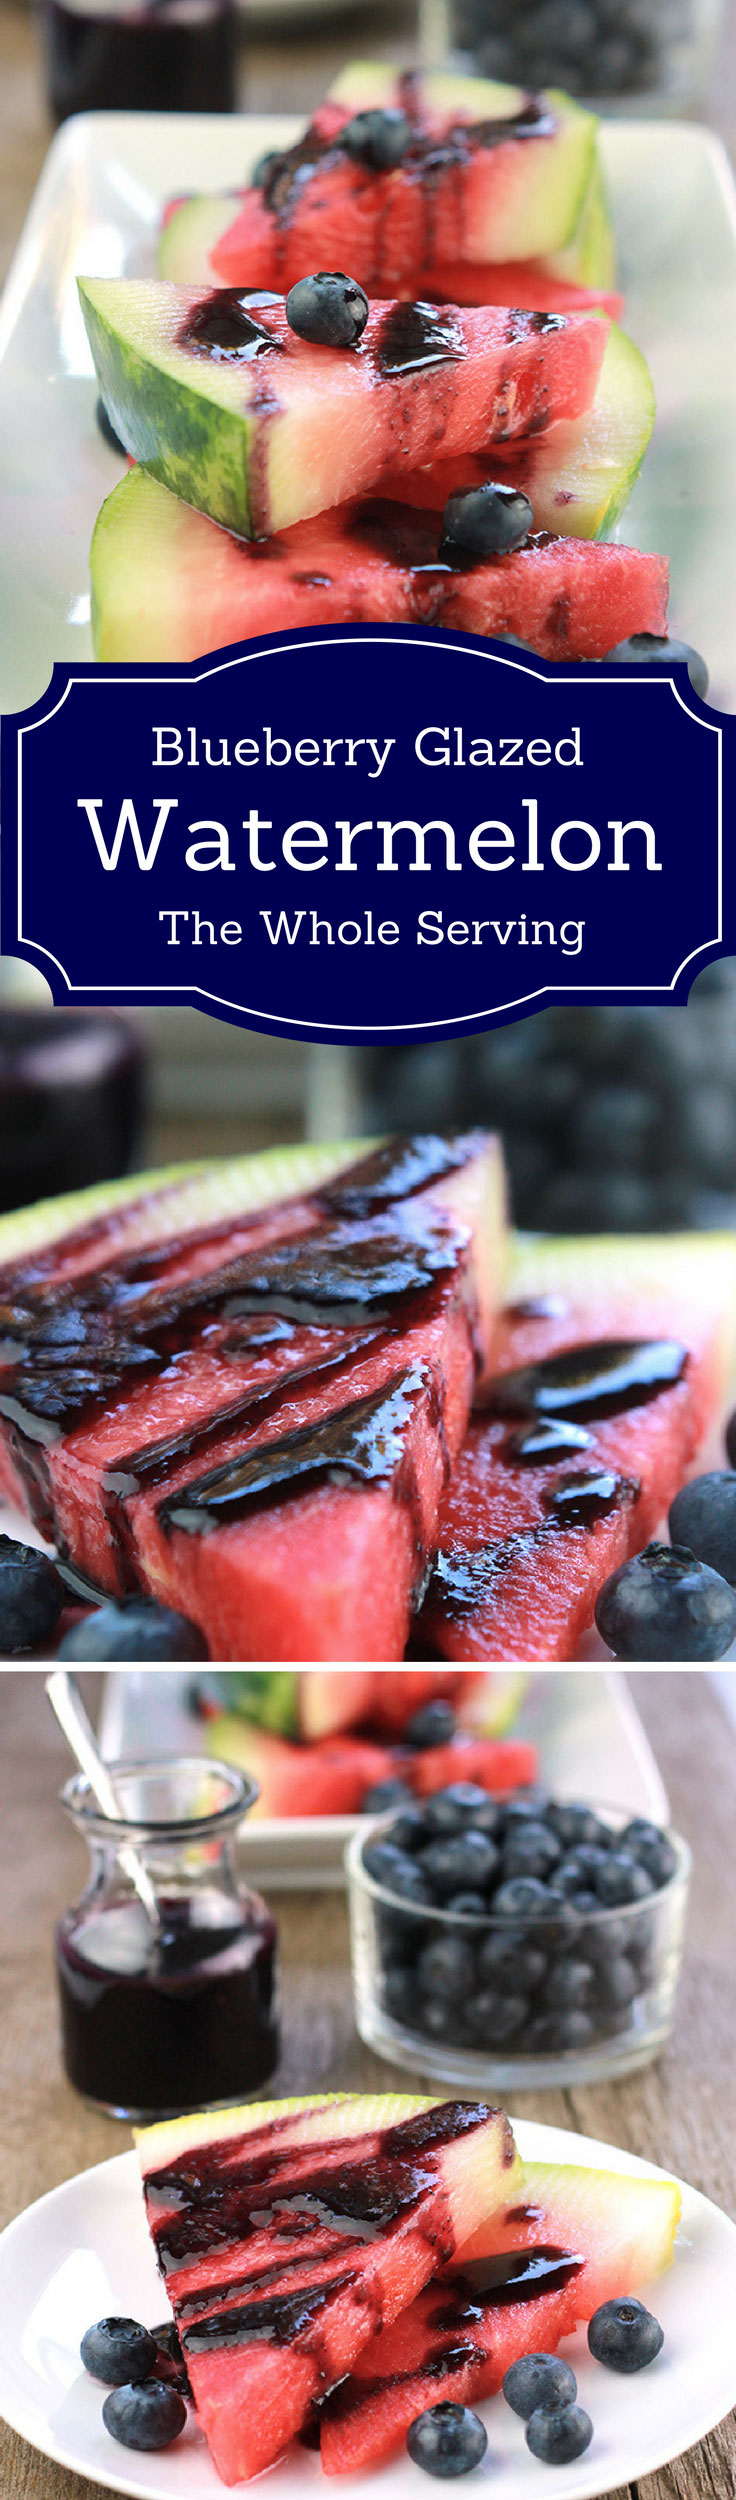 Summer may be over but there's still summer fruit to enjoy. This Blueberry Glazed Watermelon is a prefect way to enjoy the last fruits of summer.